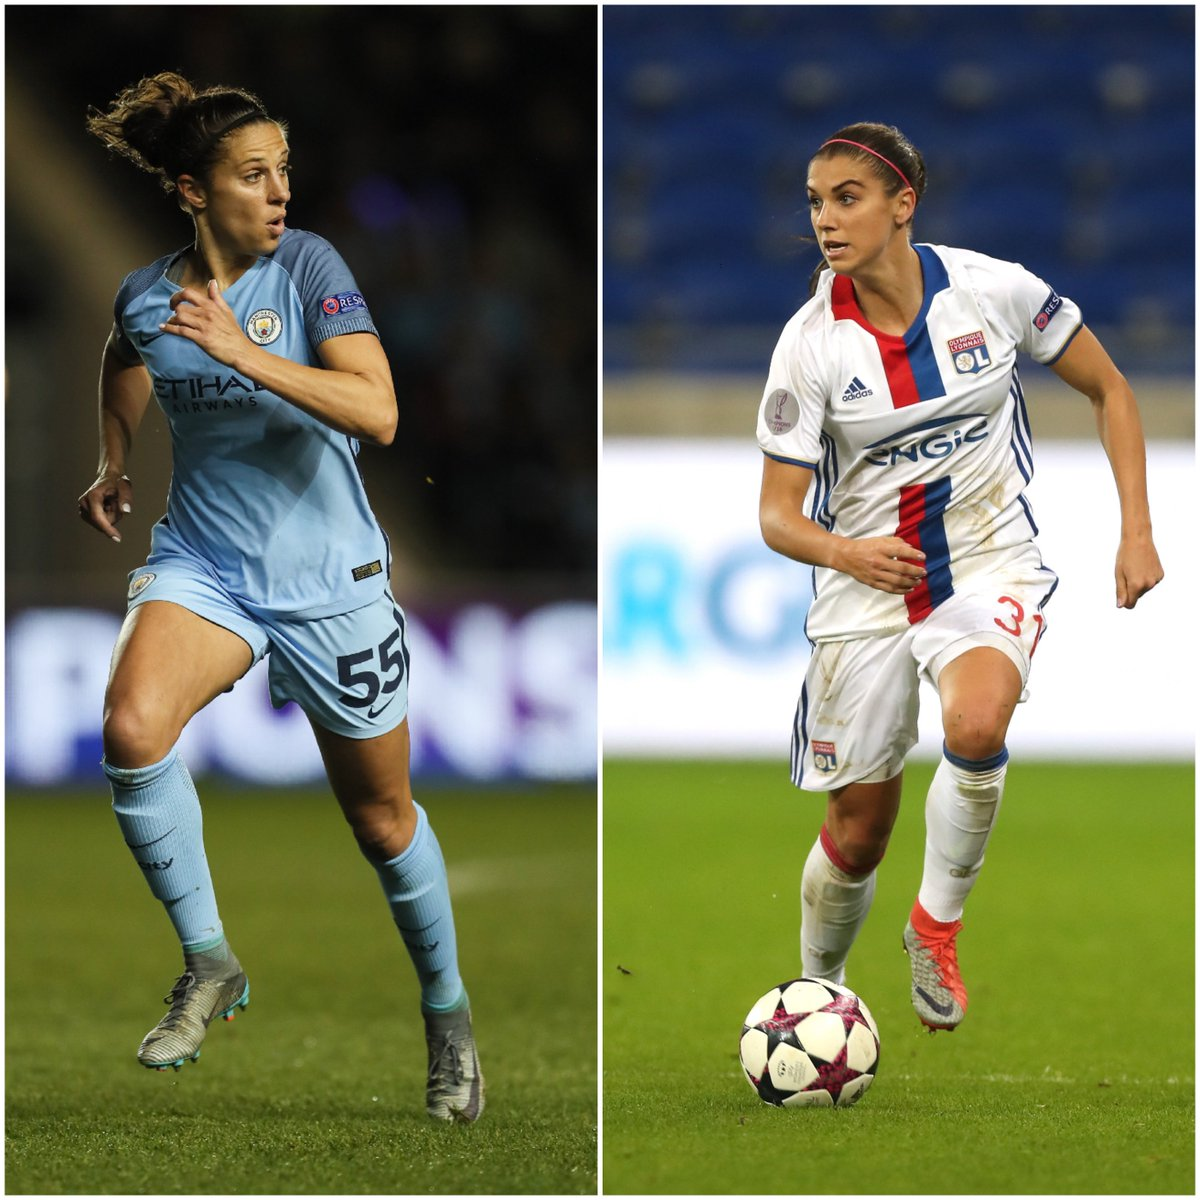 Carli Lloyd and Alex Morgan won a World Cup together with the #USWNT, but they&#39;ll go head-to-head again this weekend  http:// ble.ac/2pur4vD  &nbsp;  <br>http://pic.twitter.com/sIANitD7iH